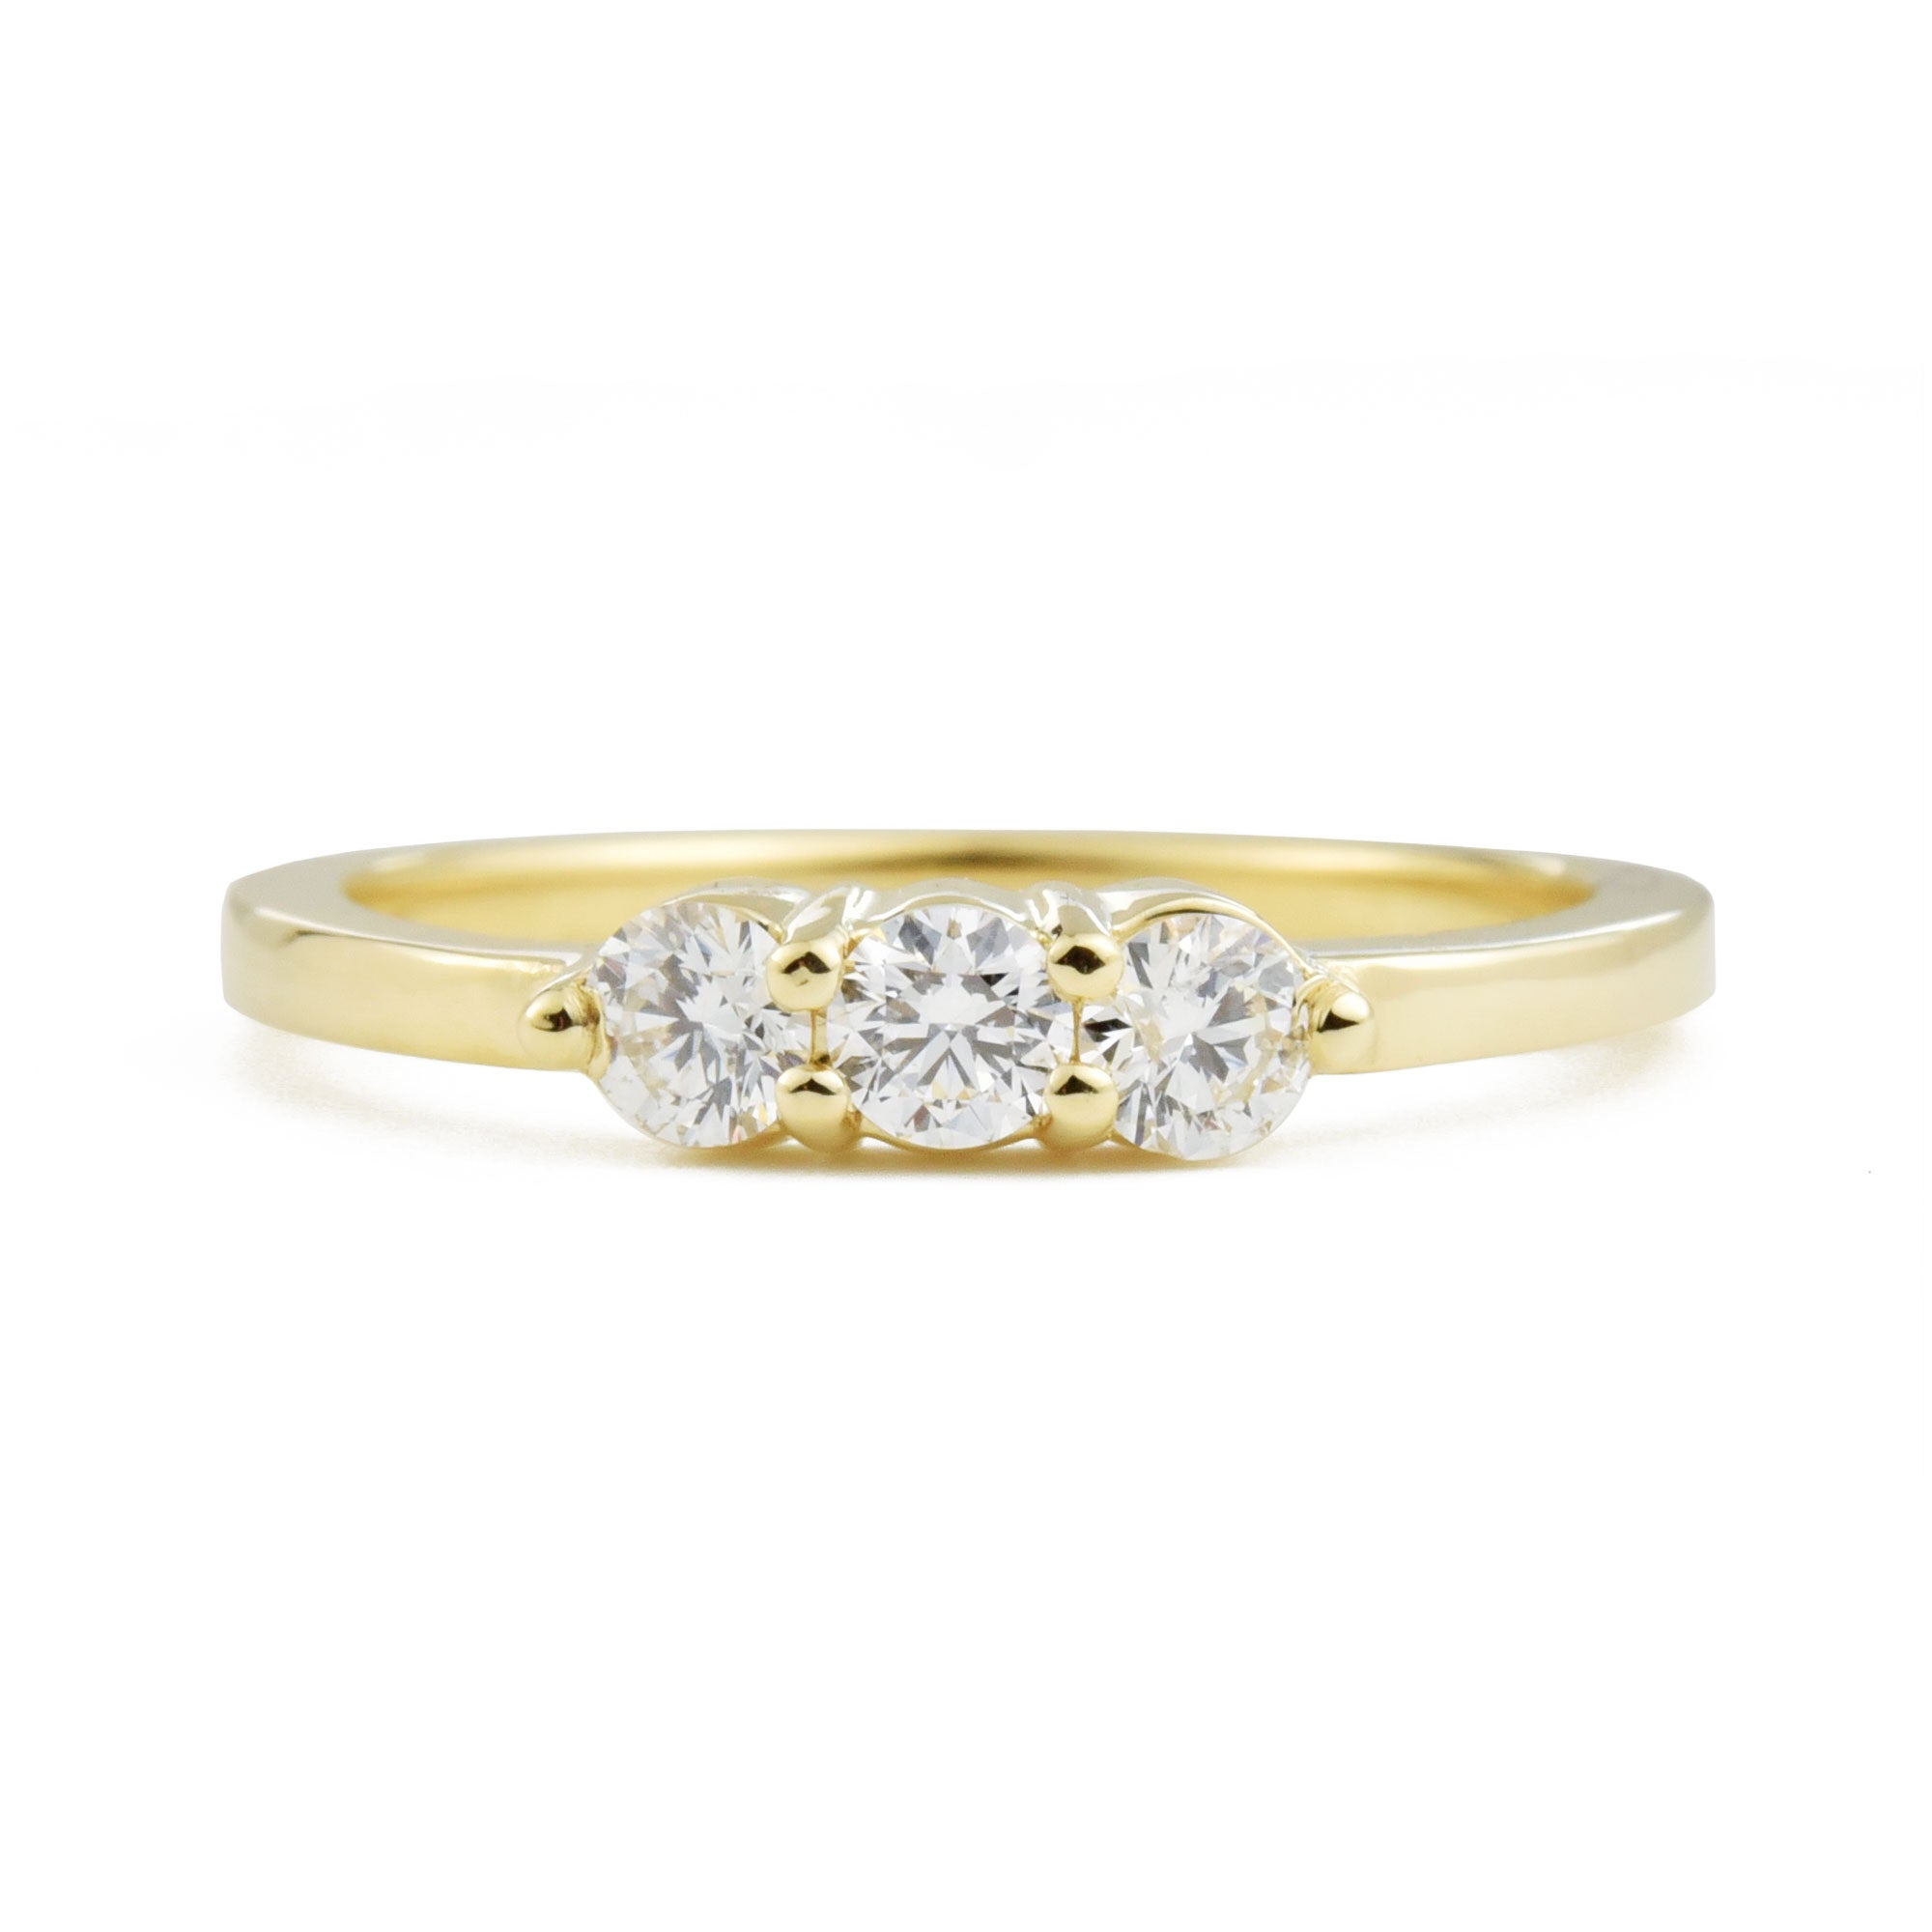 Lily Three Stone Diamond Ring in yellow gold